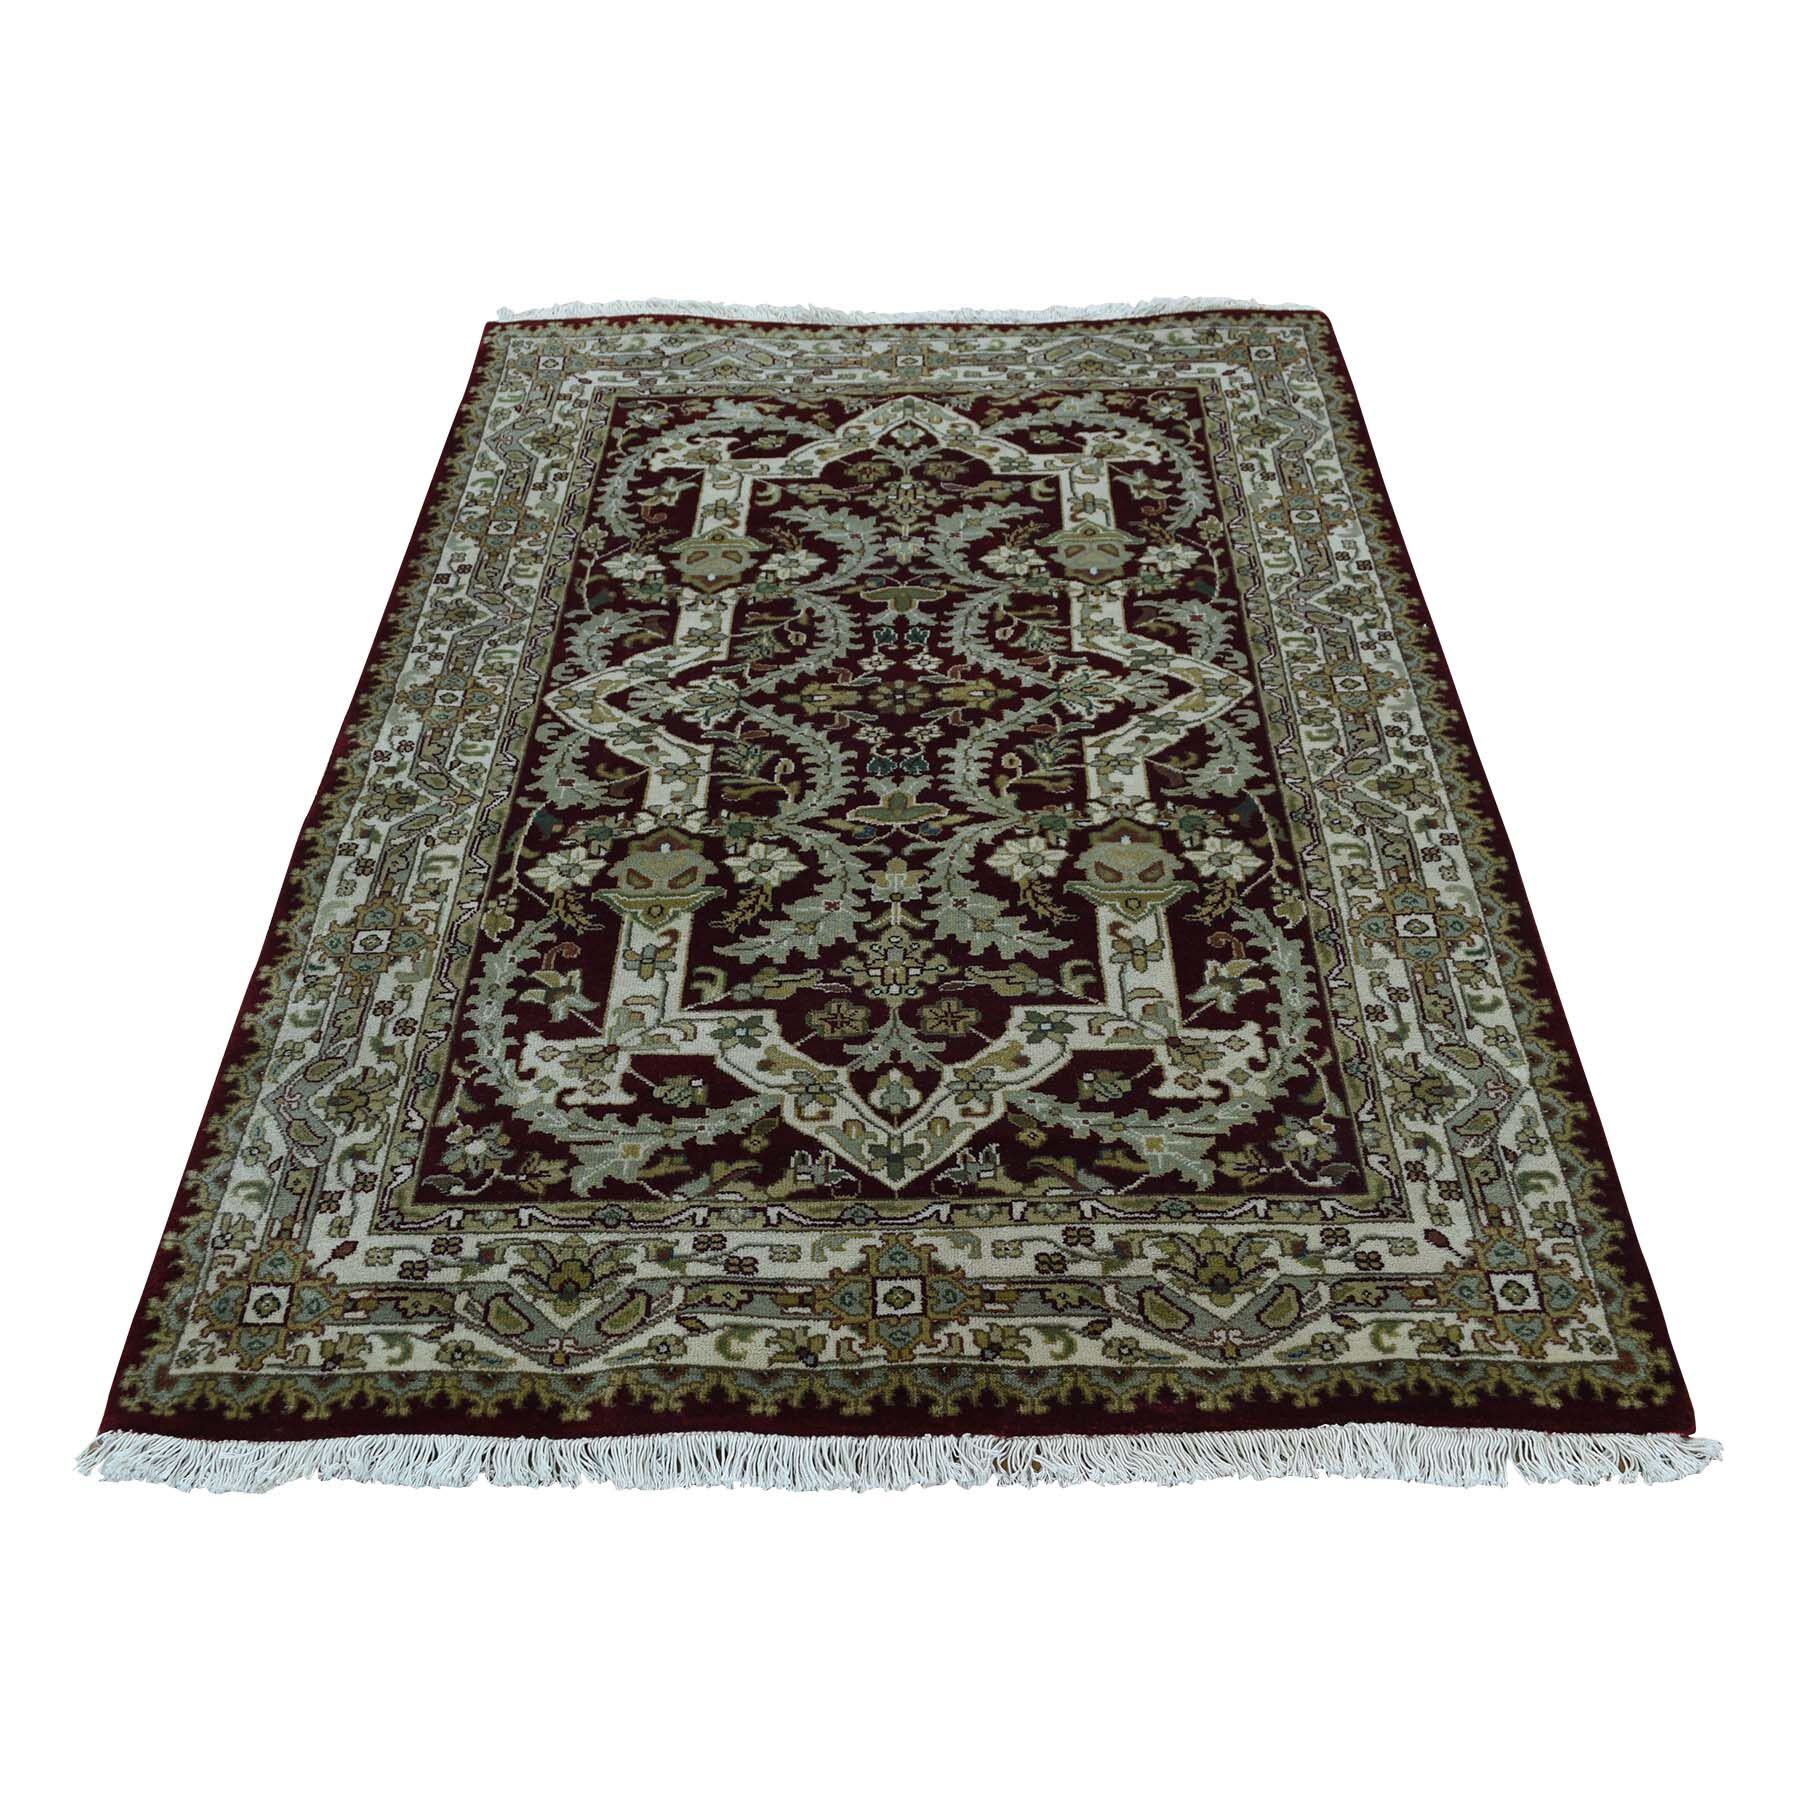 One-of-a-Kind Rudolph New Zealand 300 KPSI Hand-Knotted Blue/Green/Black Area Rug Rug Size: Rectangle 3'1